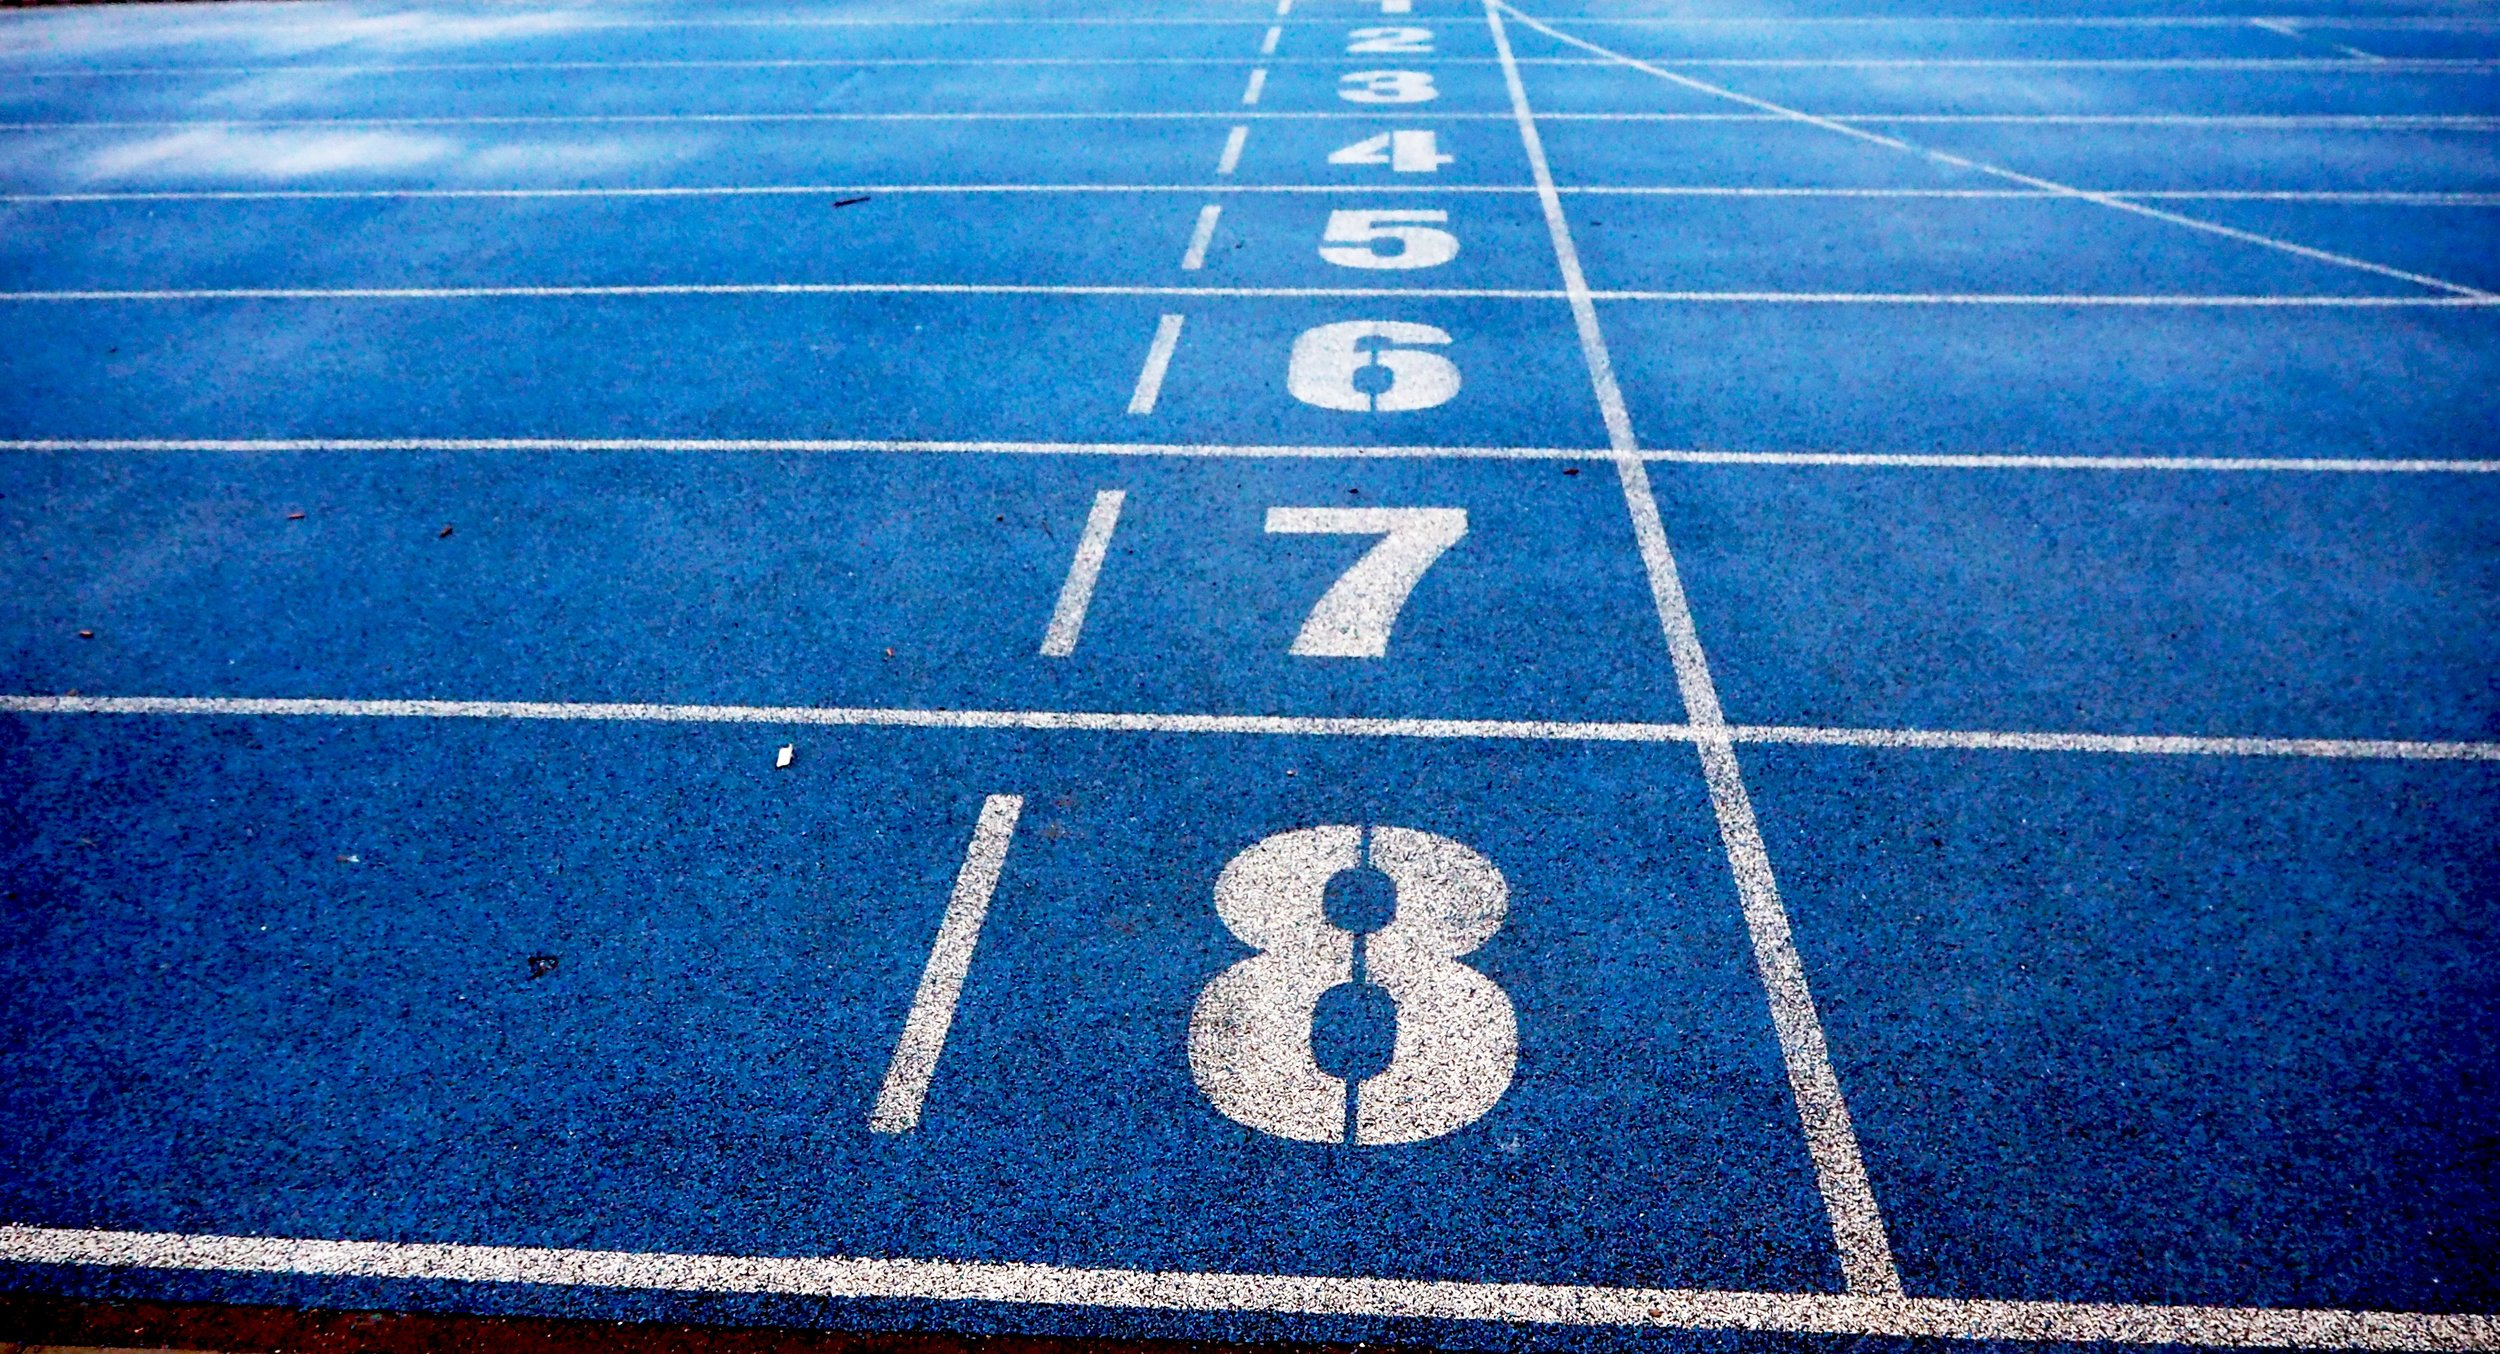 athletics-blue-ground-332835.jpg